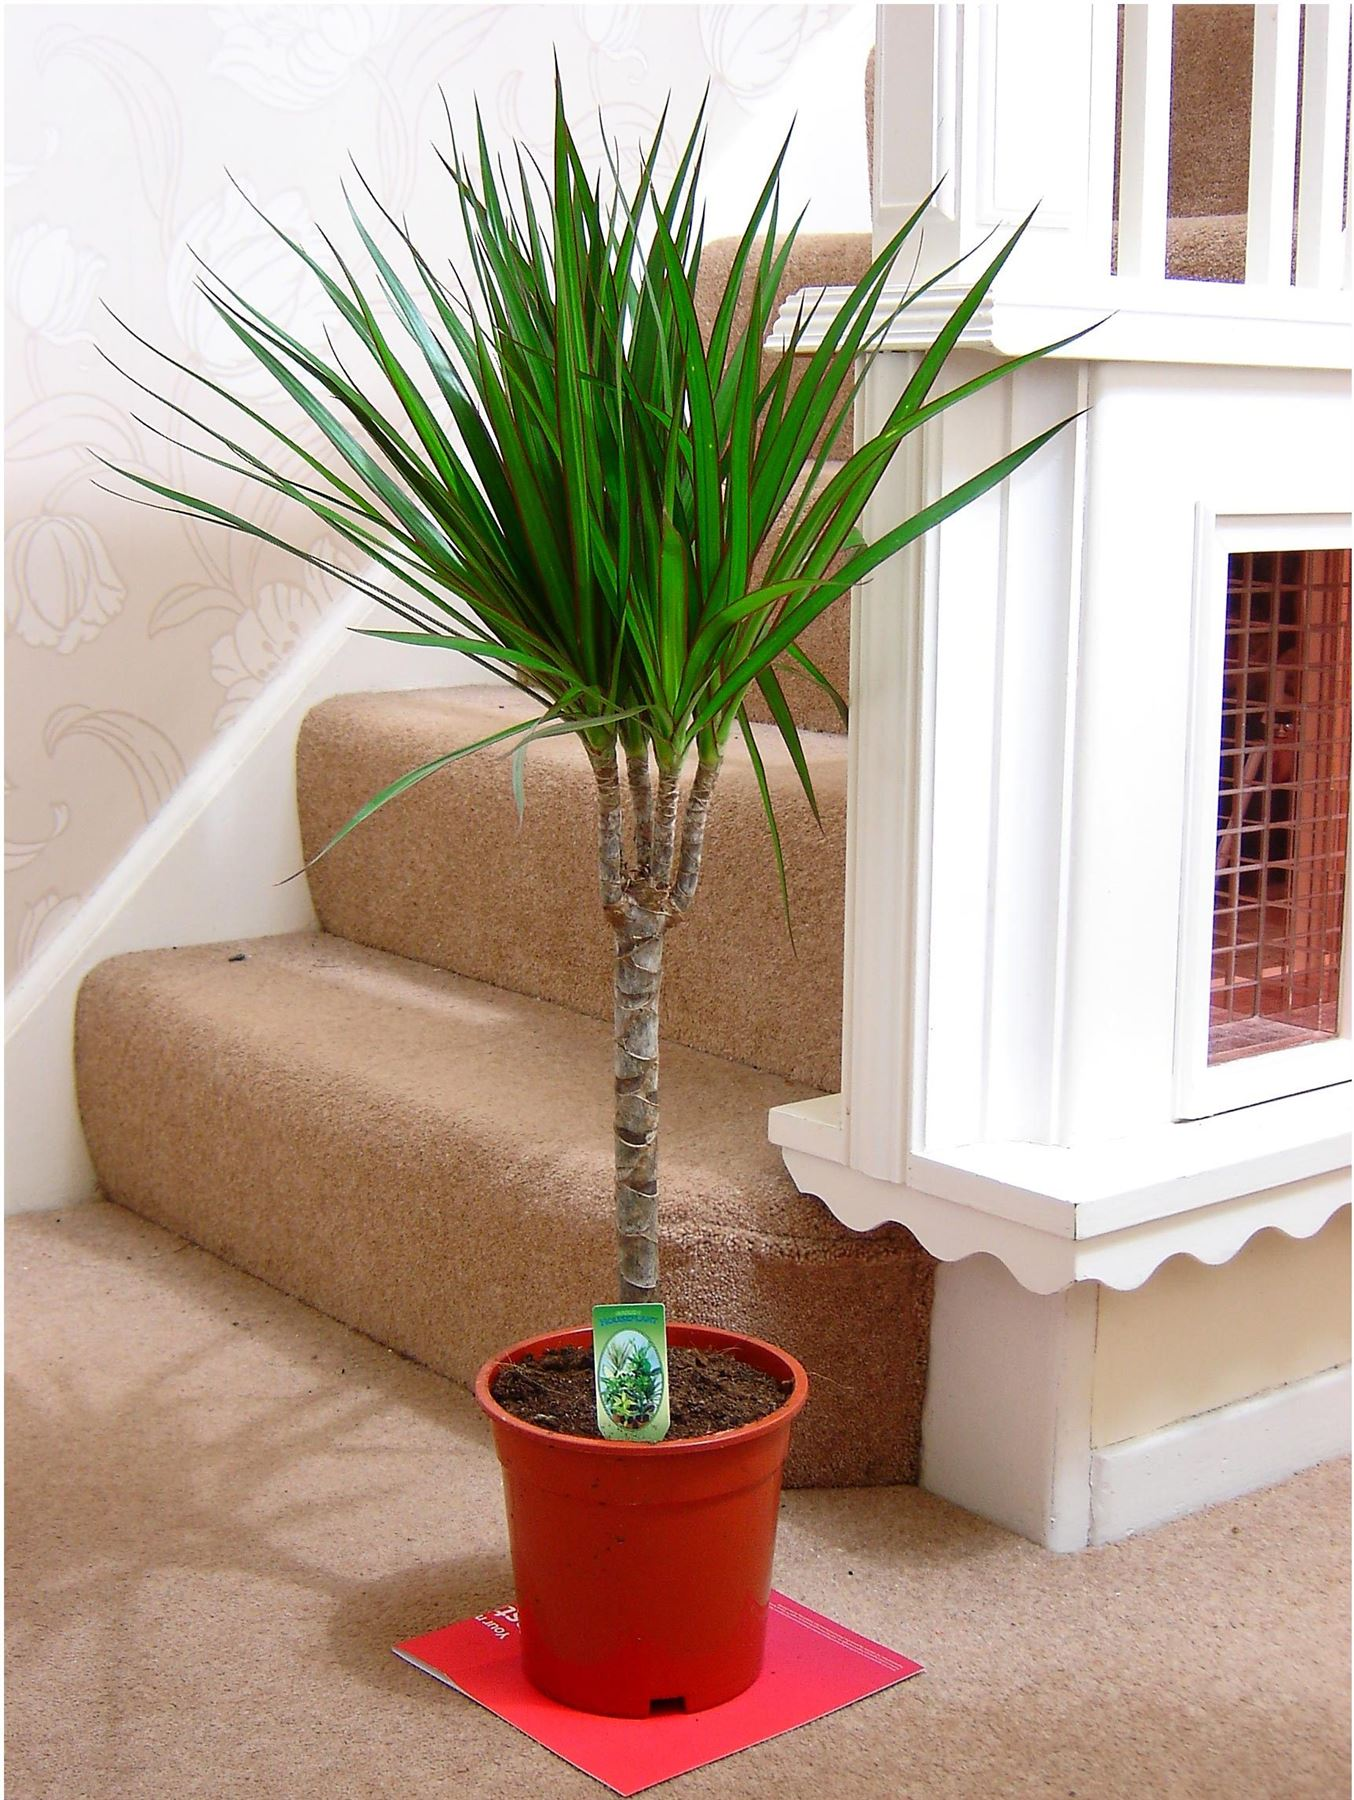 EasyPlants TRADITIONAL EVERGREEN INDOOR PLANT GARDEN TREE POT